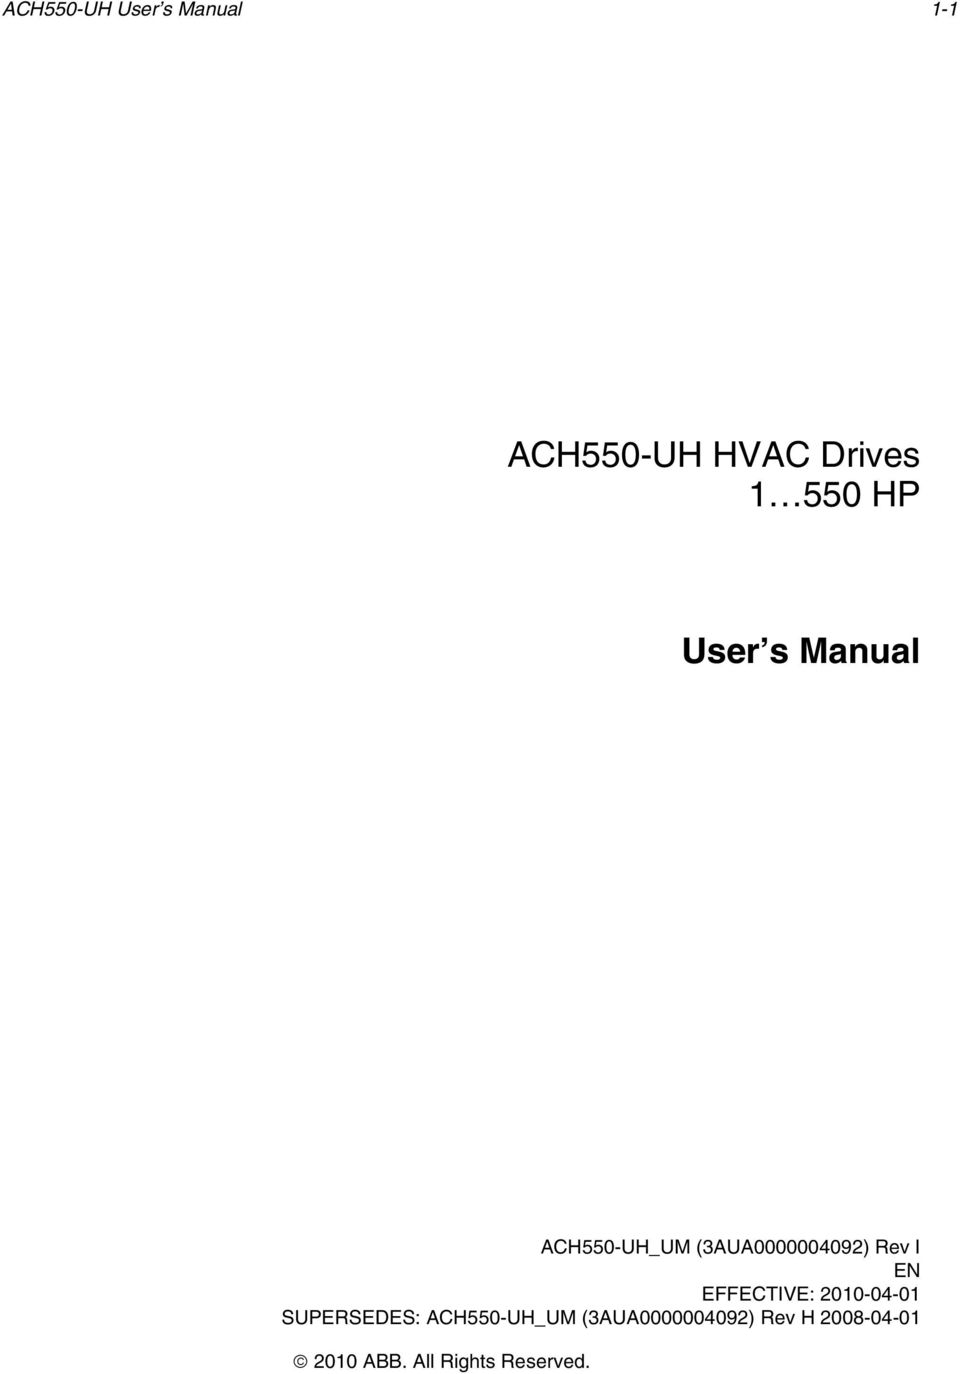 ach550 uh hvac drives user s manual ach550 uh user s manual pdf rh docplayer net ach550-uh hvac drives manual ach550-uh hvac drives user manual